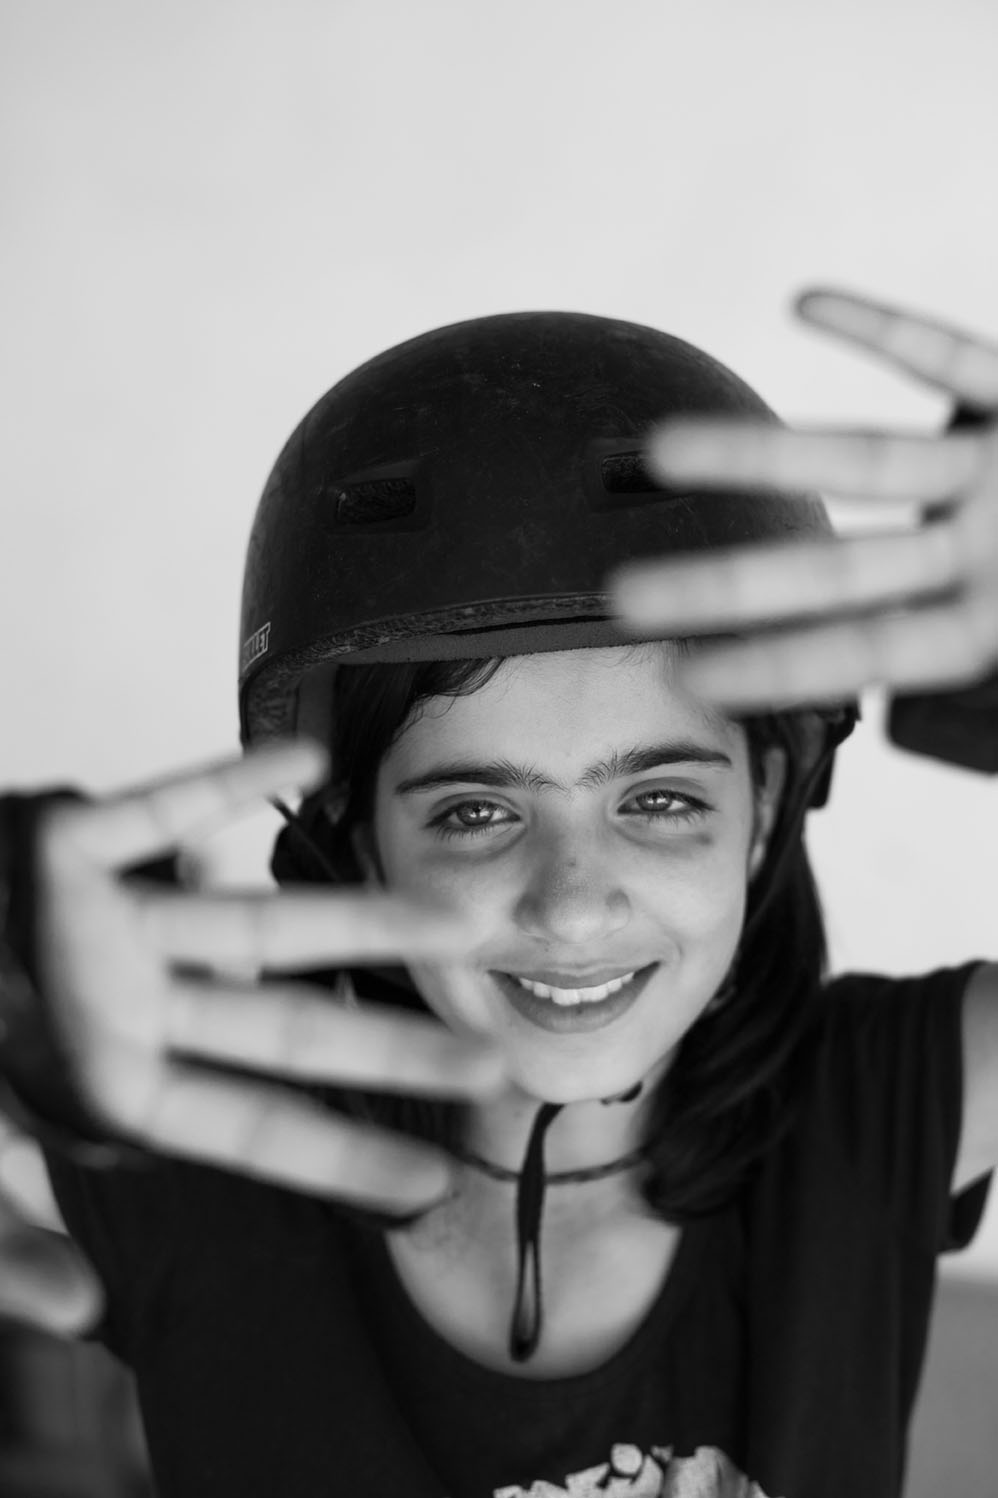 Skate & Destroy (Stereotypes). - In October 2016, co-founders Ruby Mateja & Will Ascott met while volunteering with SkatePal, a skate NGO building skate parks in the West Bank. Here they discovered the power skateboarding has to enable disadvantaged youth. Shortly after their experience in Palestine, Ruby & Will arrived in Athens, launching Free Movement Skateboarding to aid the region's growing refugee population.Learn more ➝